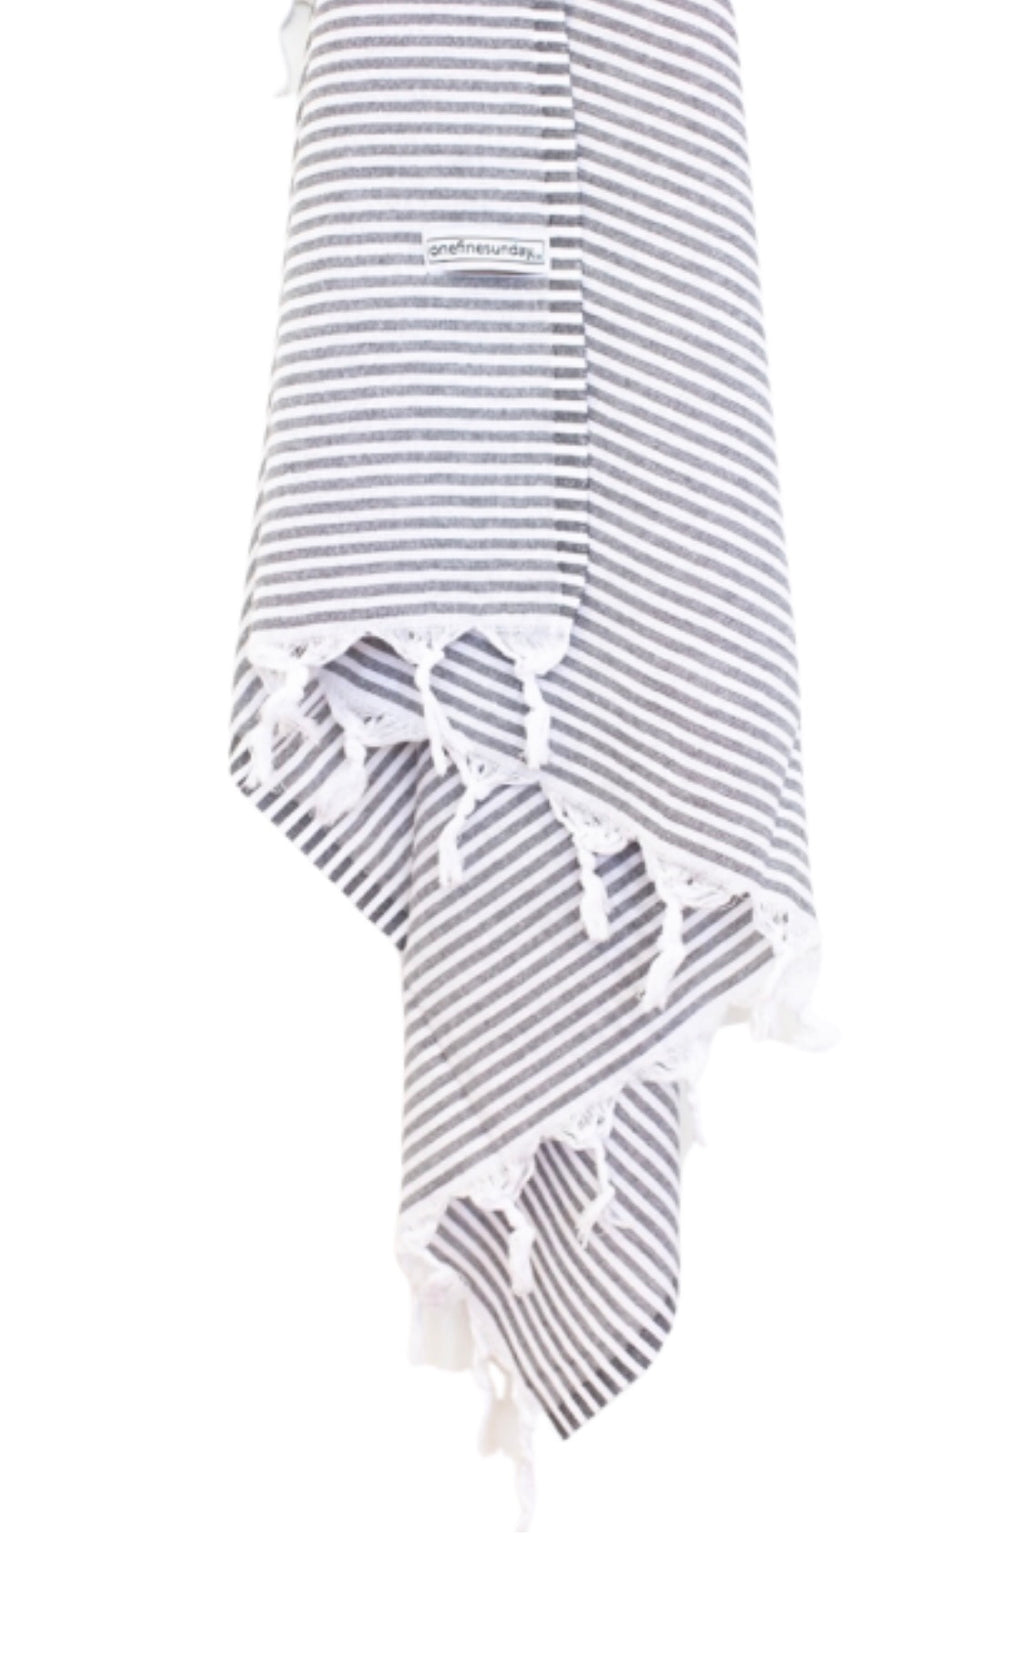 Classic Turkish Towel - Thin Striped Dark Grey-onefinesunday co